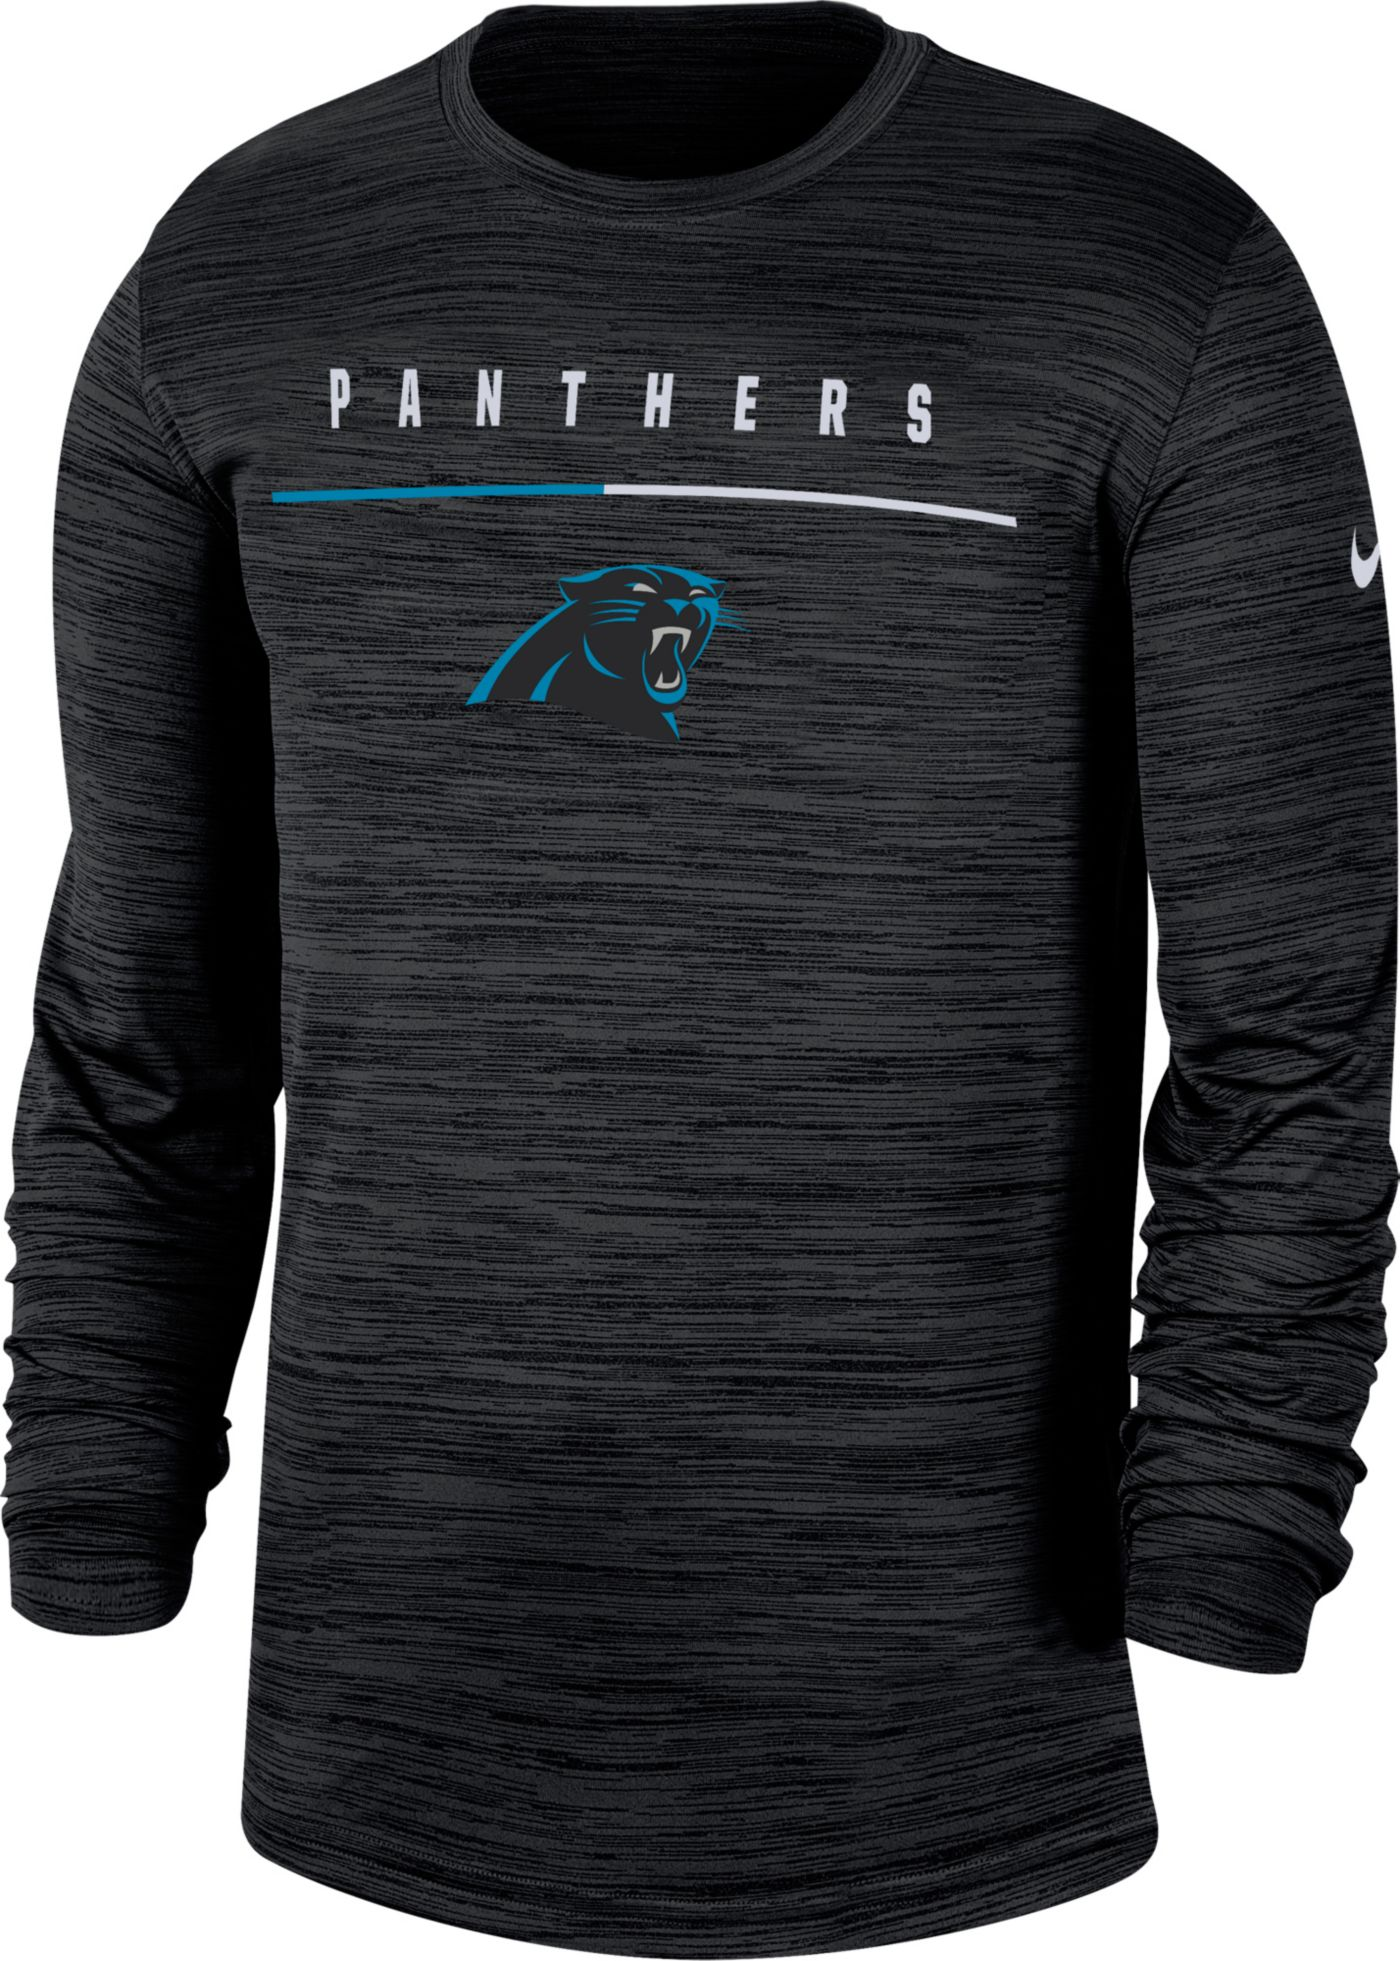 Nike Men's Carolina Panthers Sideline Legend Velocity Black Long Sleeve Shirt